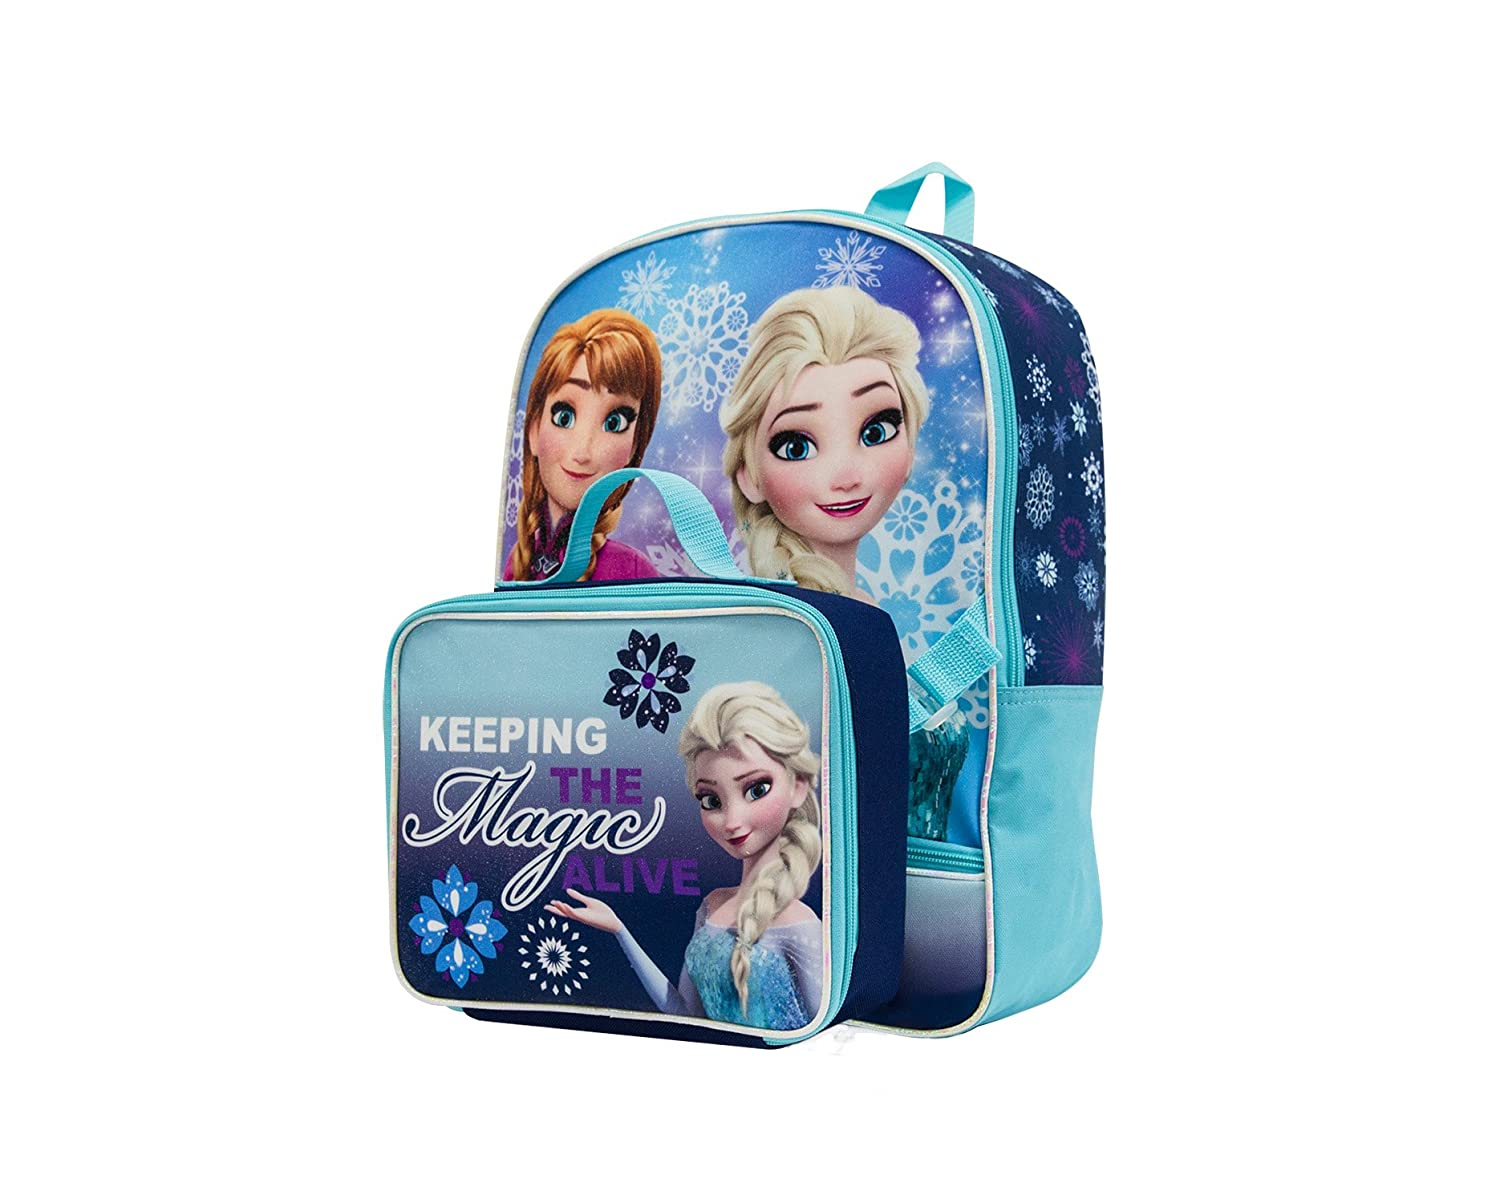 Disney Frozen Backpack With Lunch Kit Backpack Blue One Size Global Design Concepts Inc FZ30905-SC-TU00